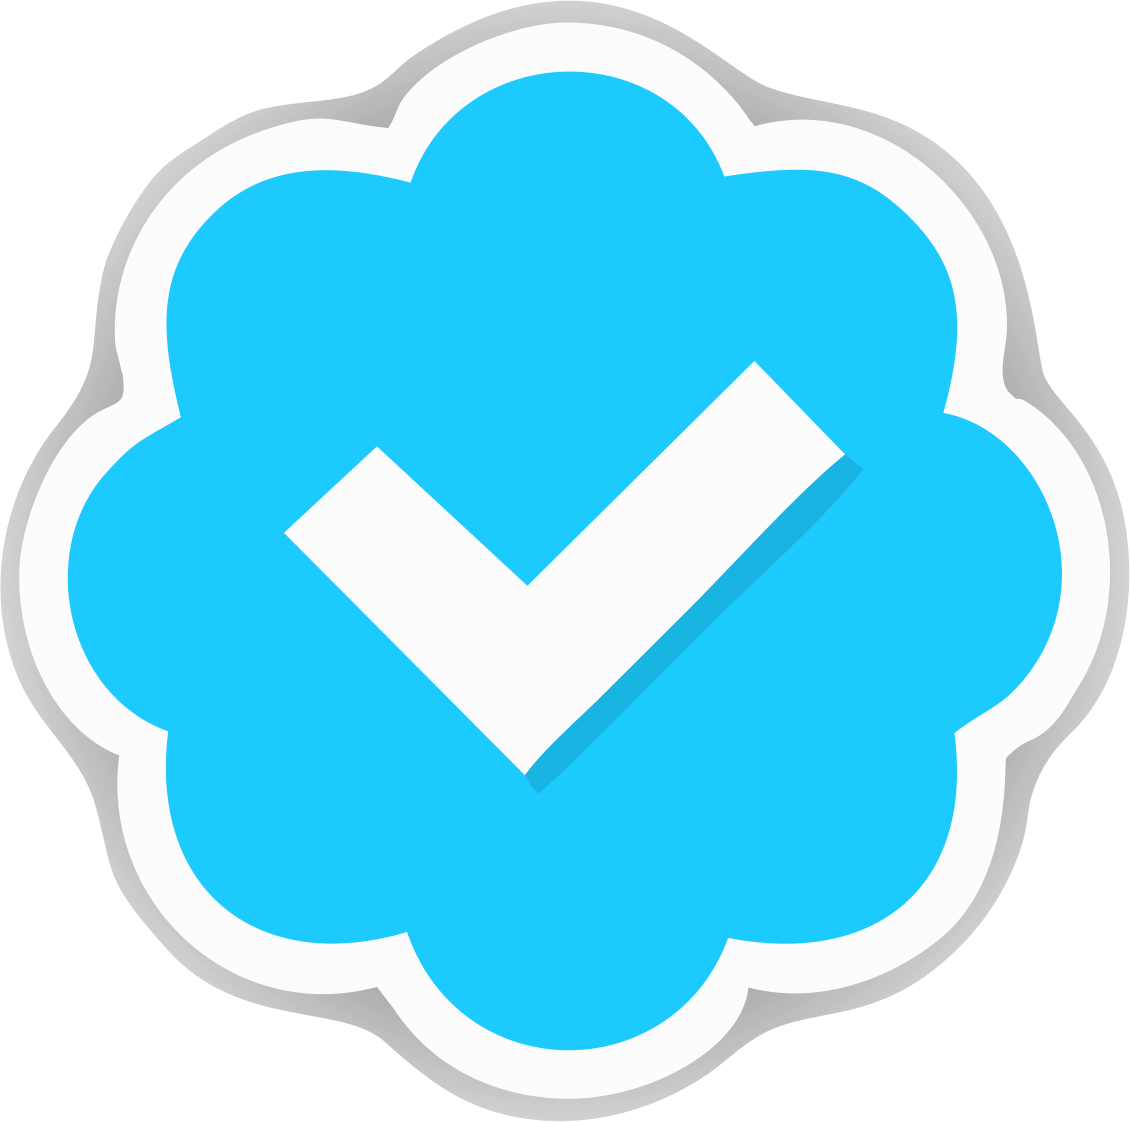 Why my twitter account should be verified